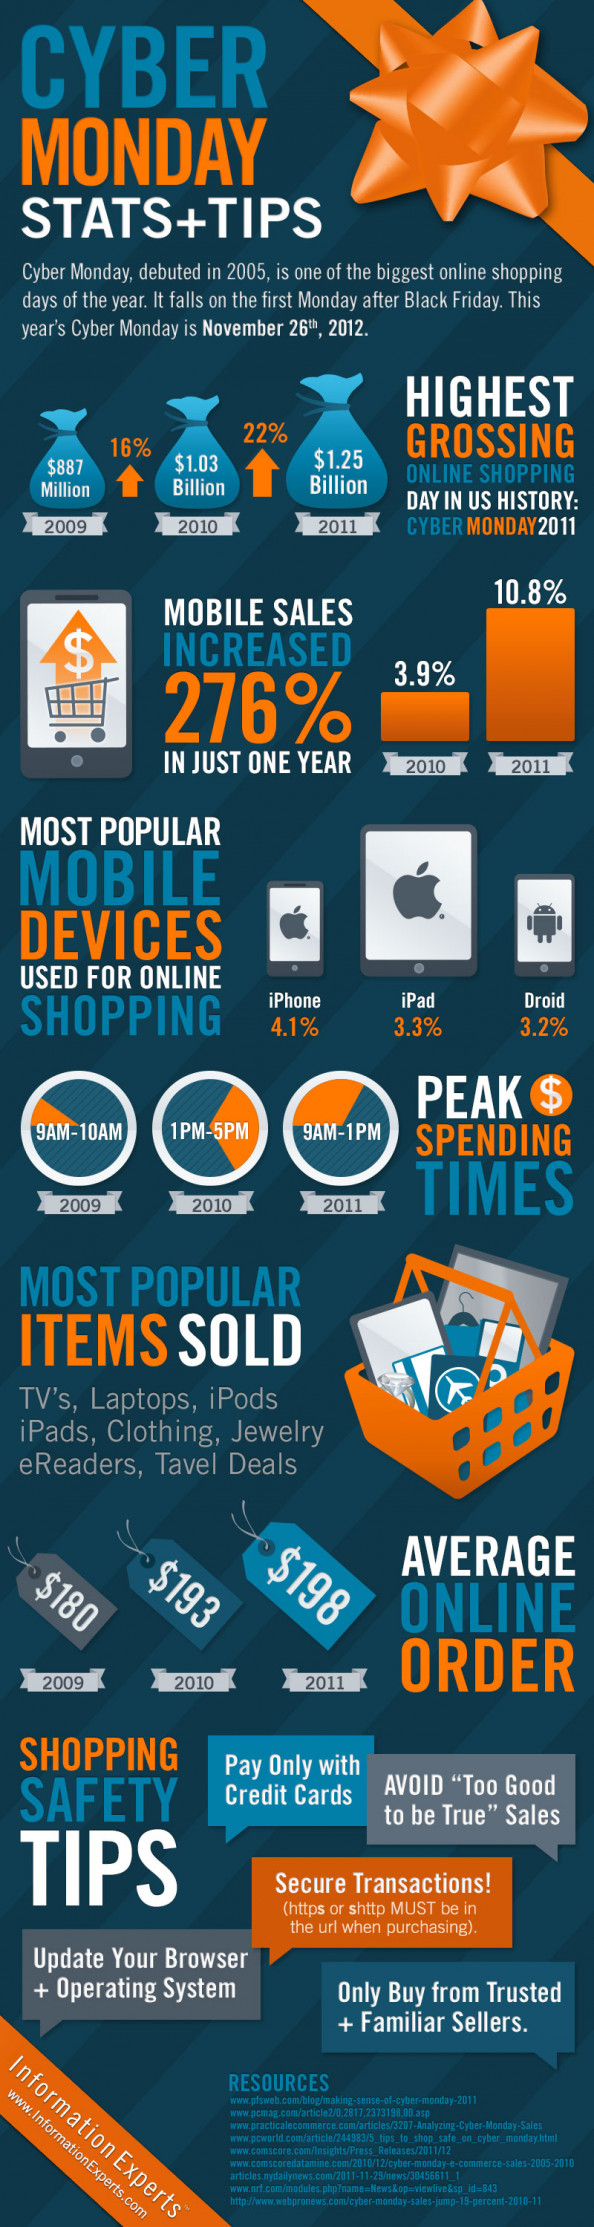 Cyber Monday: Tips &amp; Stats Infographic